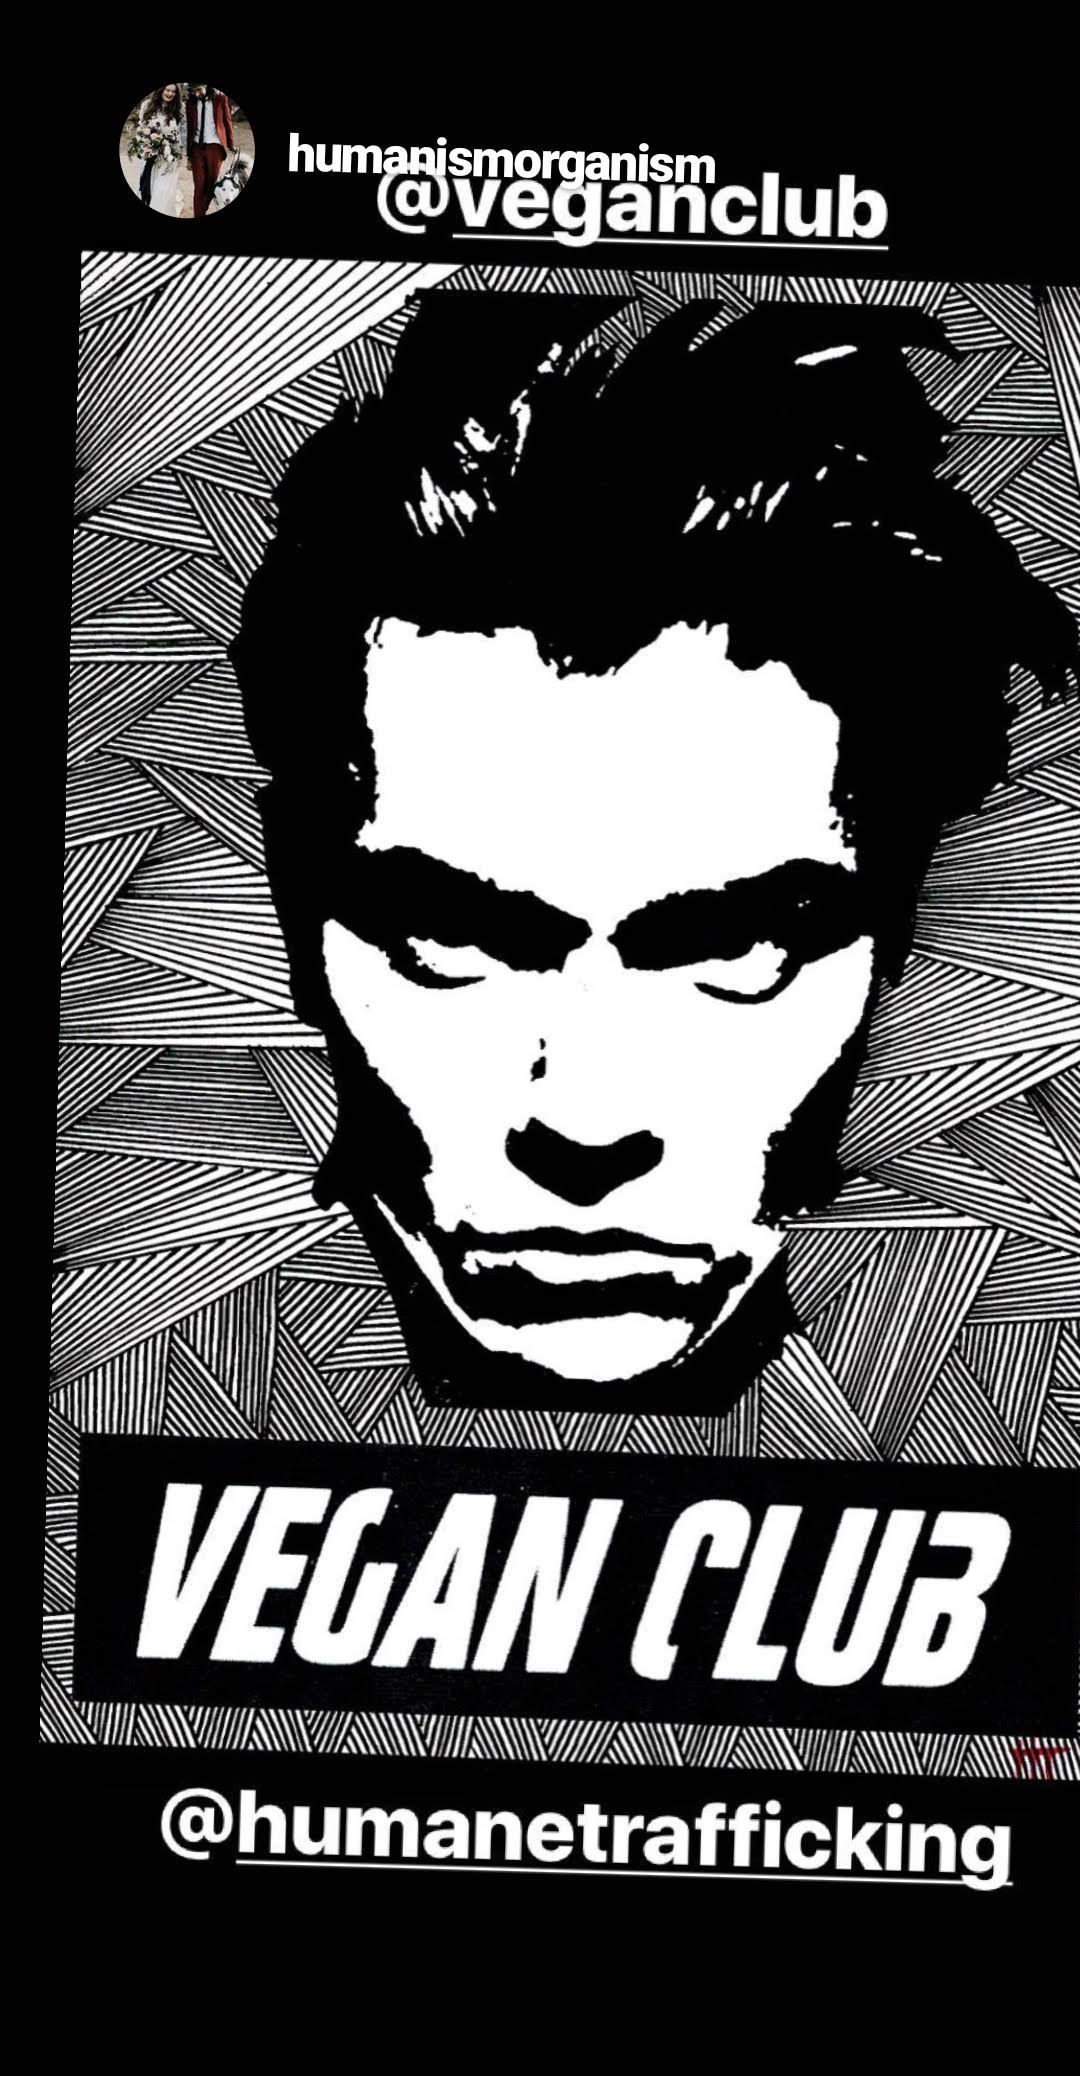 Street Art NewsPrint Poster Vegan Club featuring River Phoenix by Le Fou Collab with @humanetrafficking